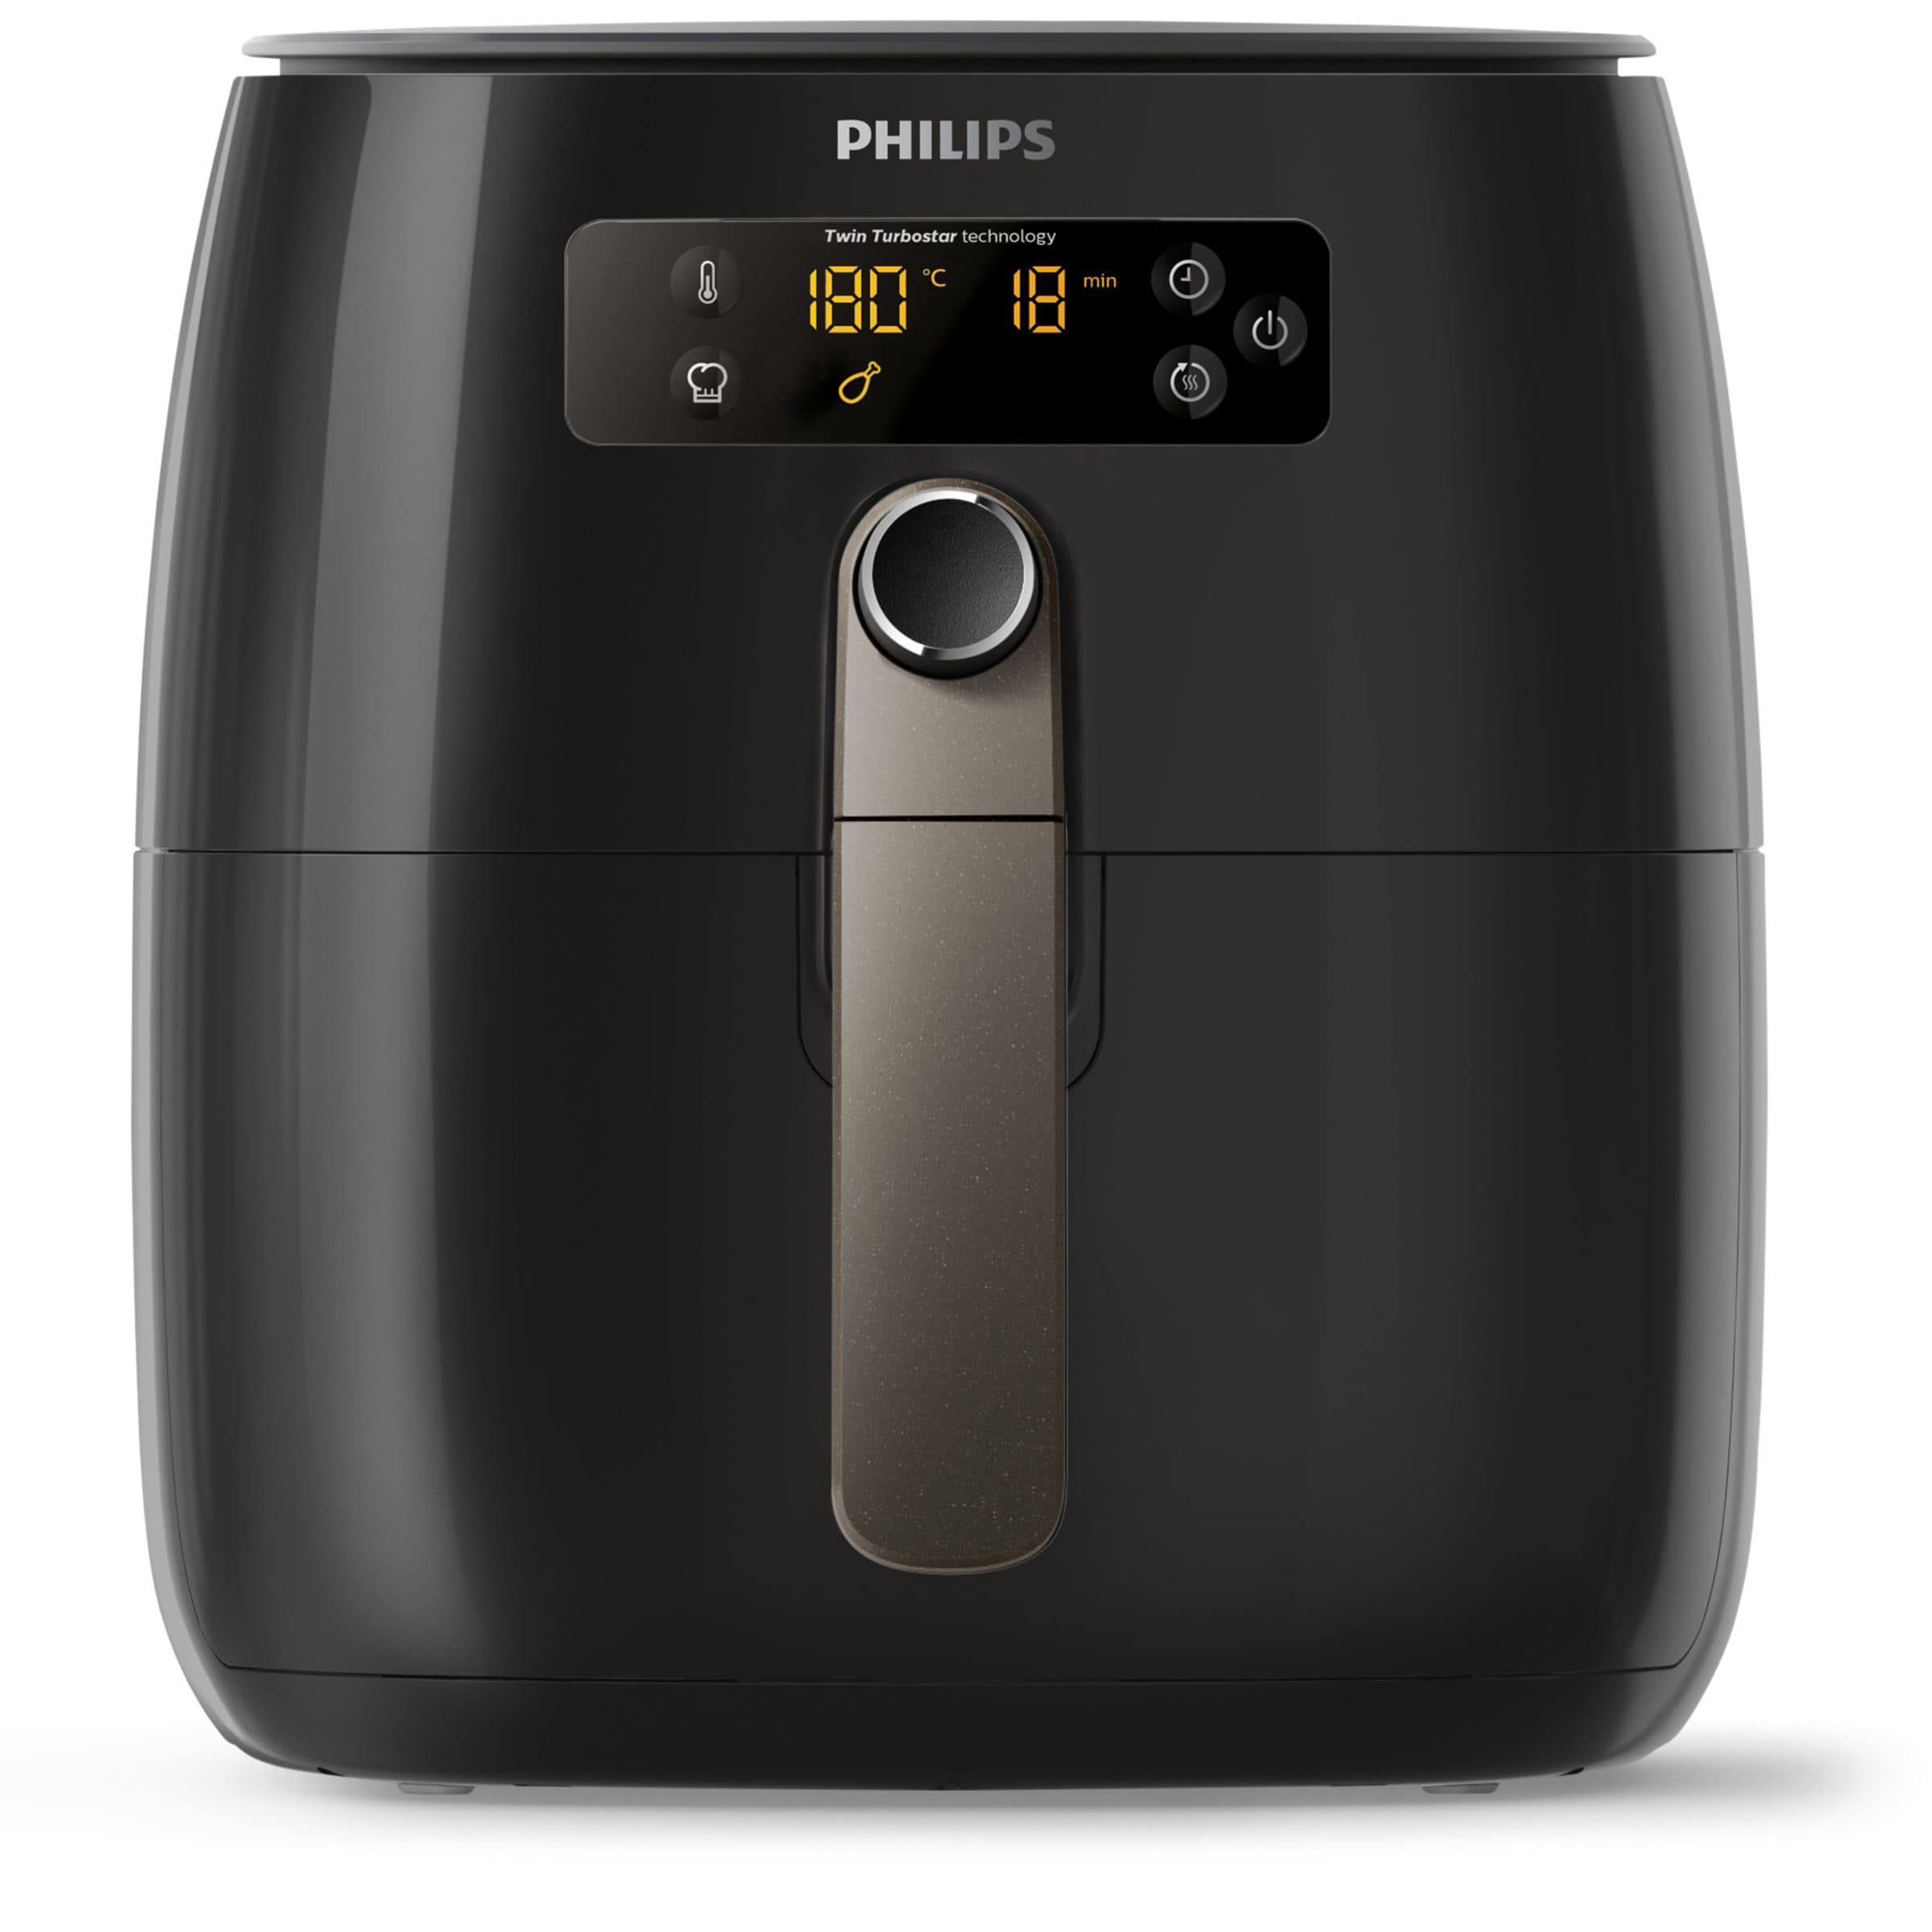 Philips Avance Collection Fat Removal Technologie, Airfryer für 222,00 Euro